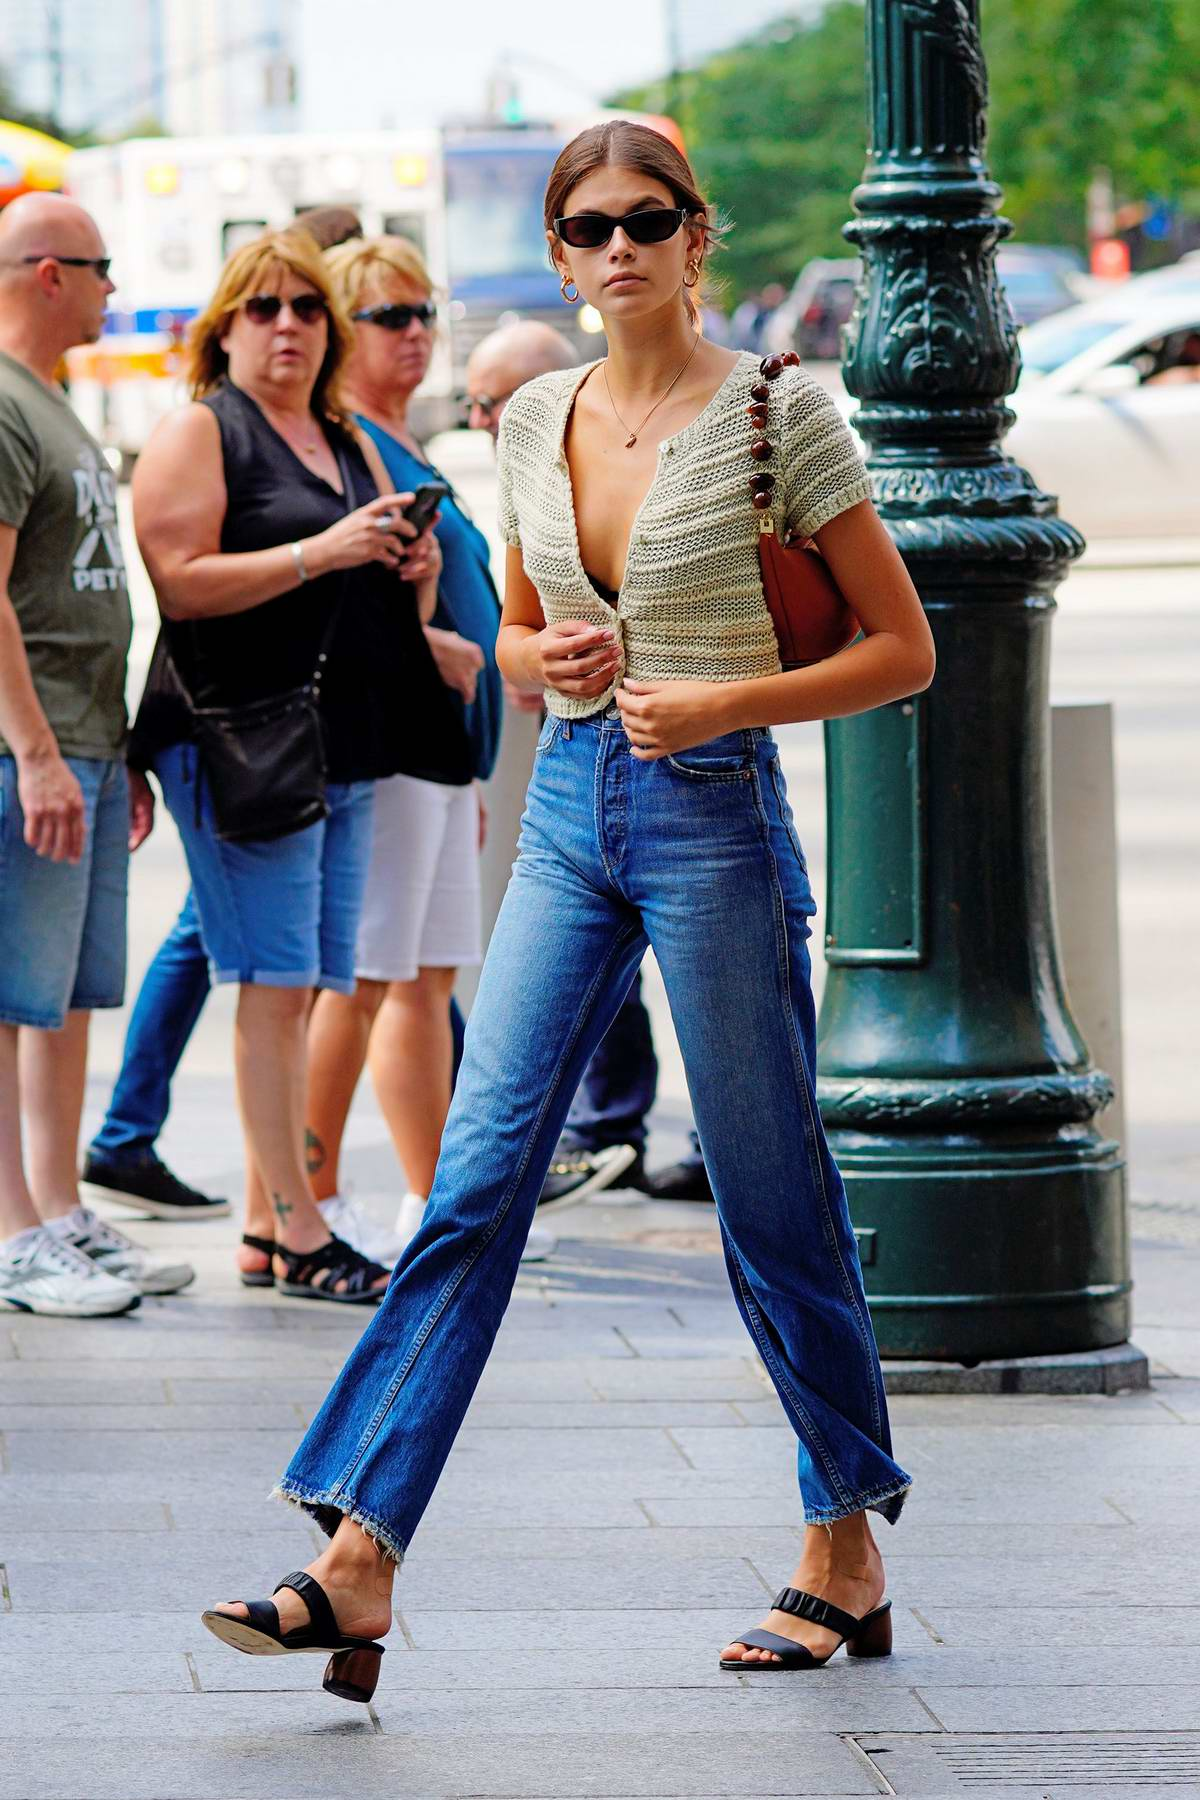 Kaia Gerber looks fashionable in knitted crop top and jeans while out and about in New York City